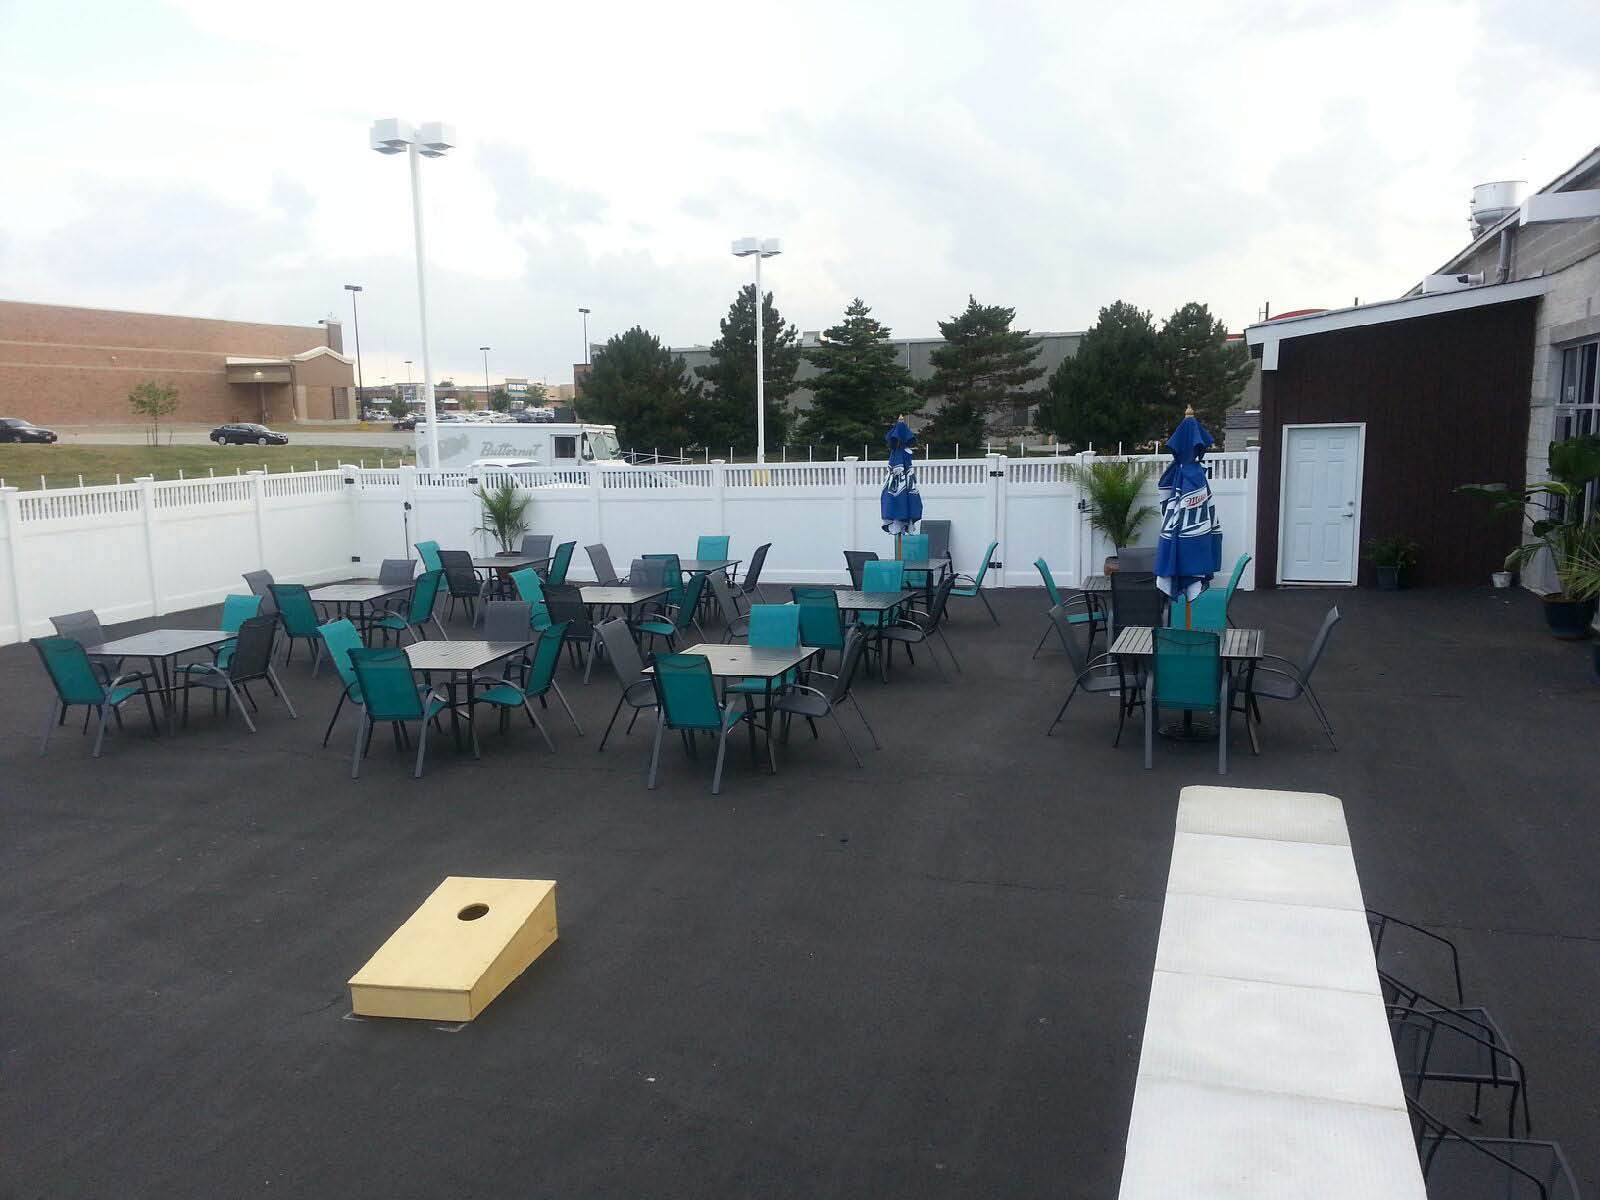 Outdoor Patio at Sam's Tripe Crown Sports Bar located in Orland Hills.